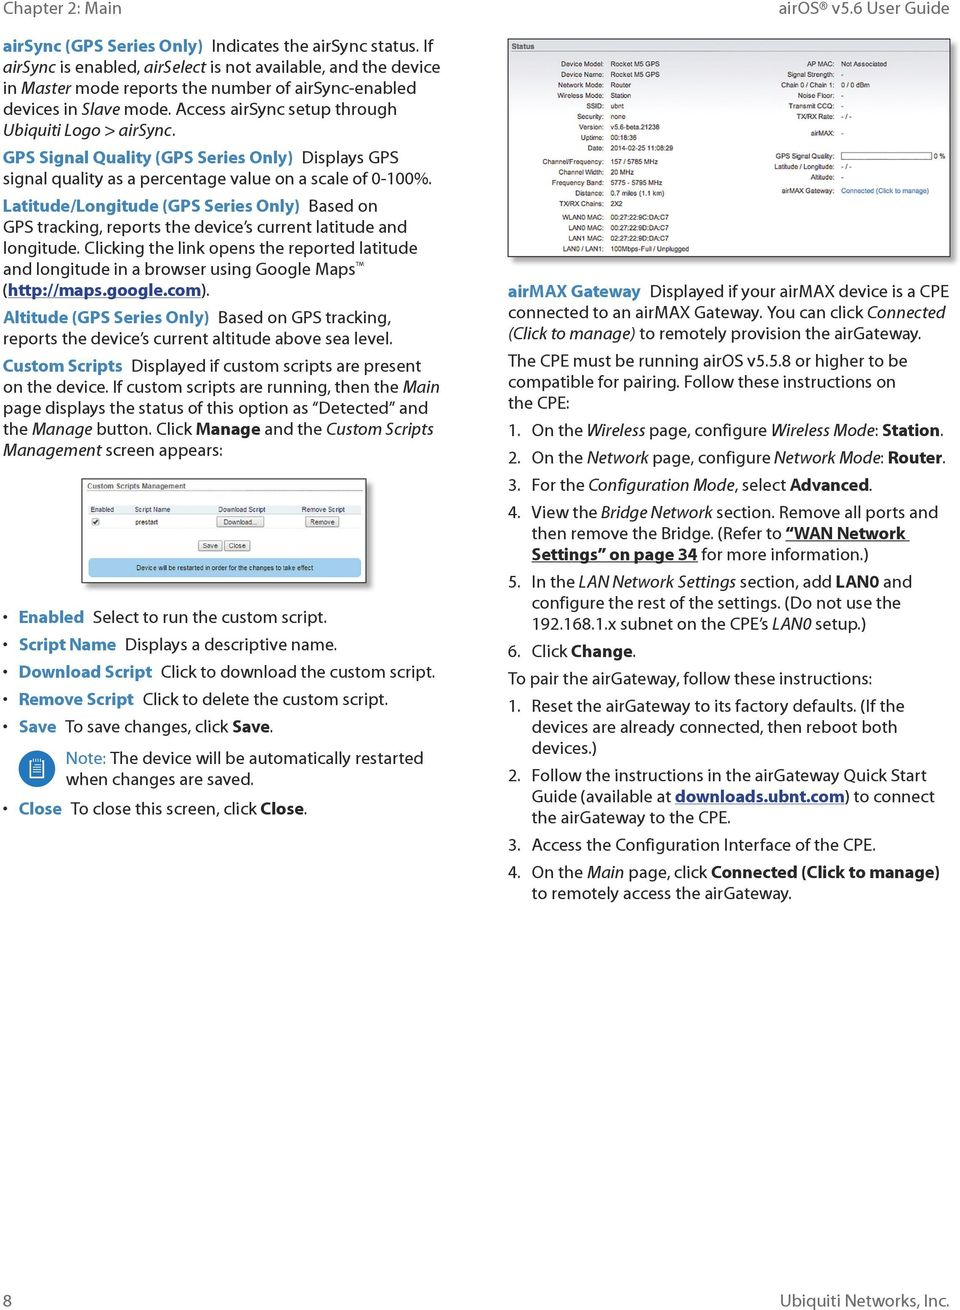 Operating System for Ubiquiti M Series Products Release